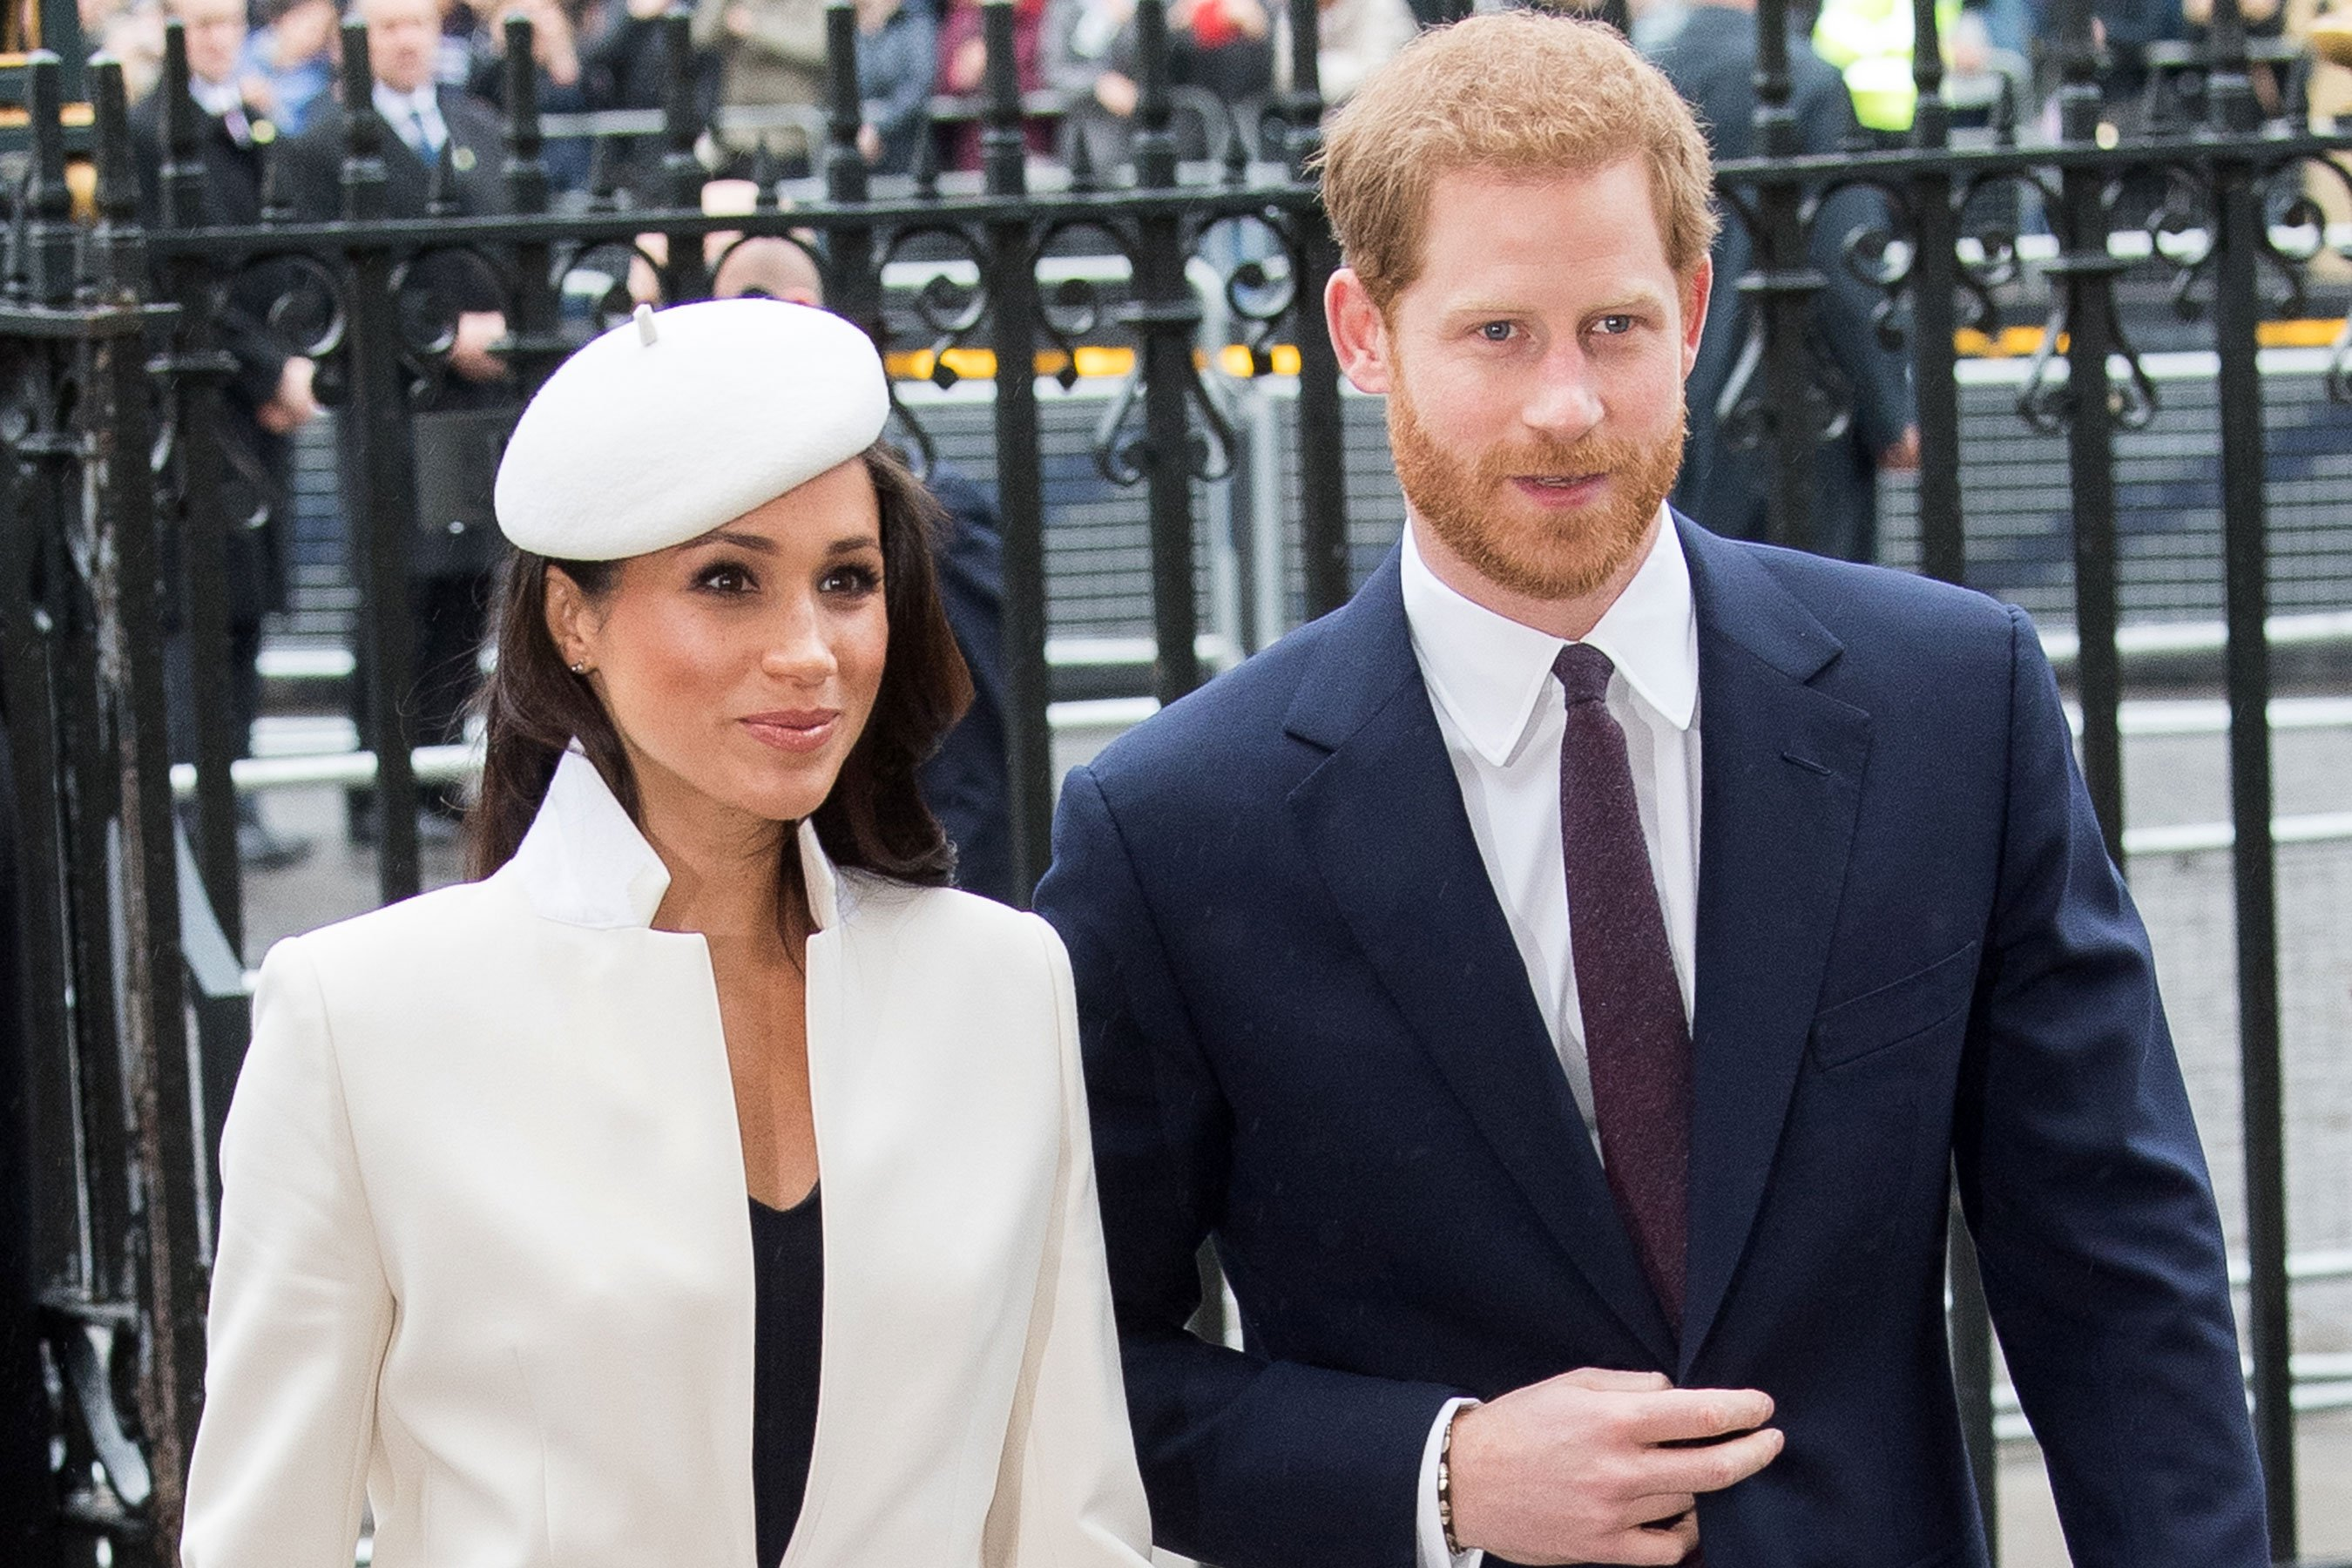 Meghan Markle's dad will meet Prince Harry for the first time days before walking her down the aisle